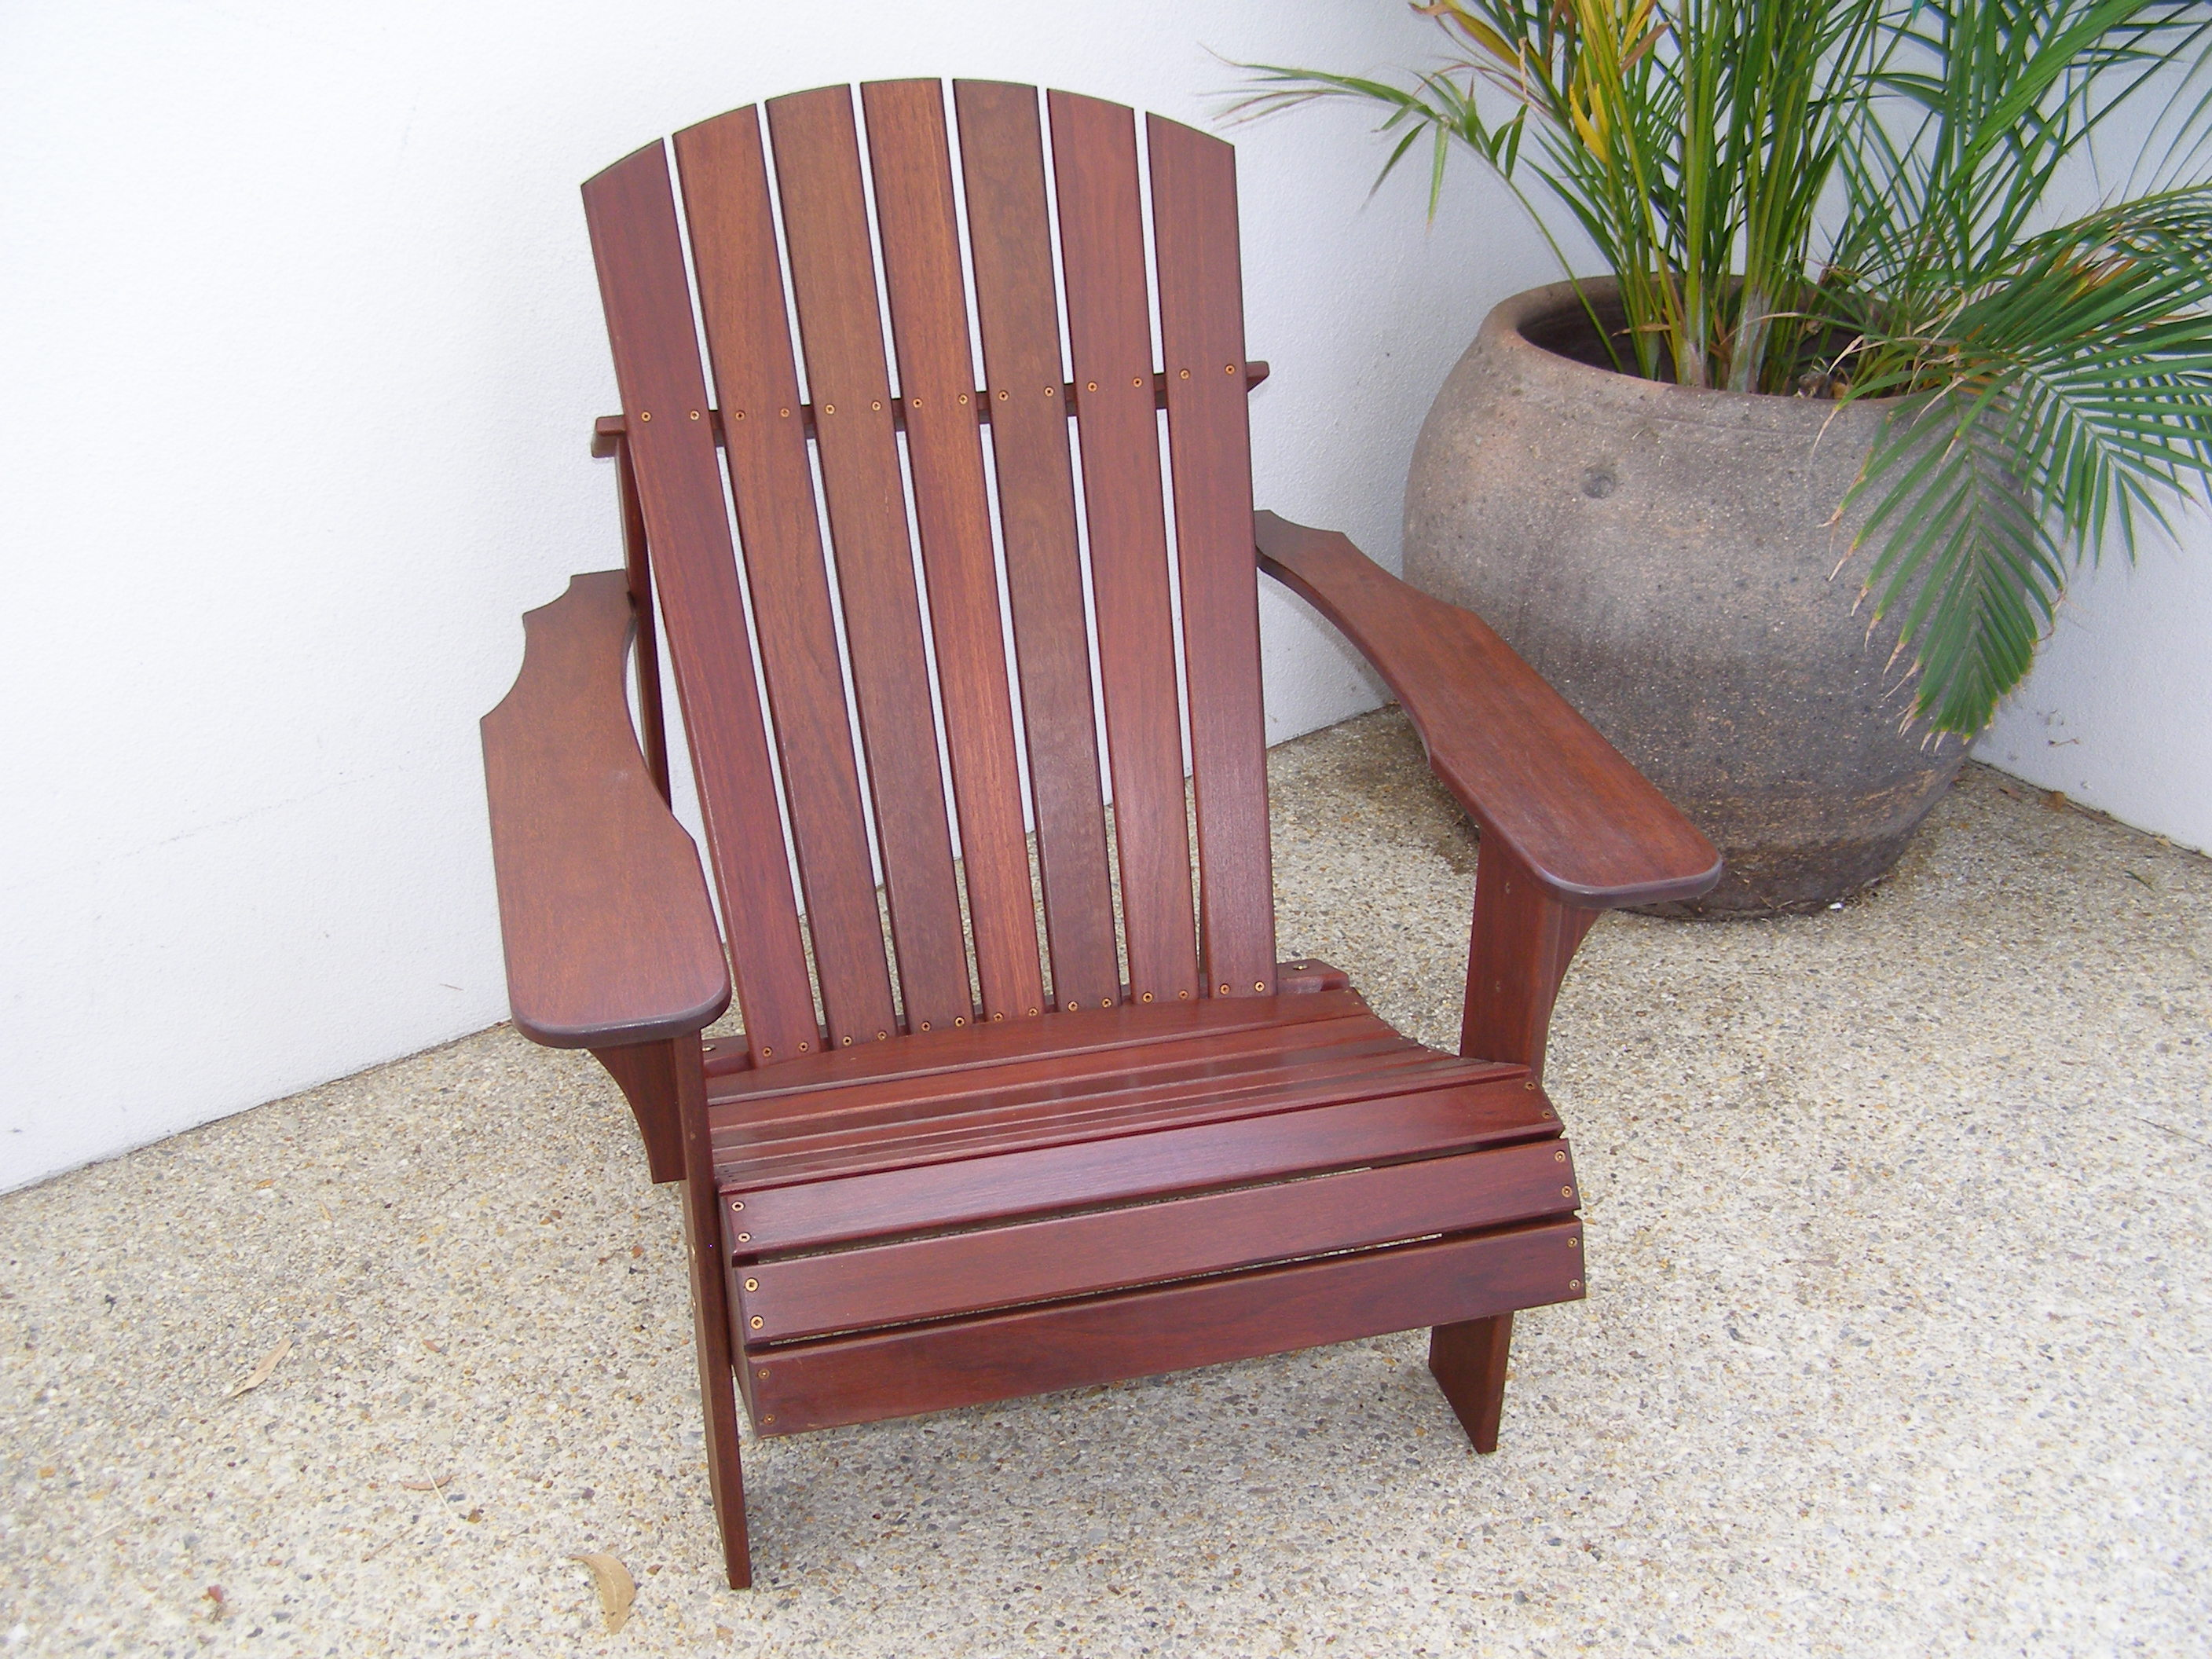 Adirondack / Cape Cod Chair Now In Stock